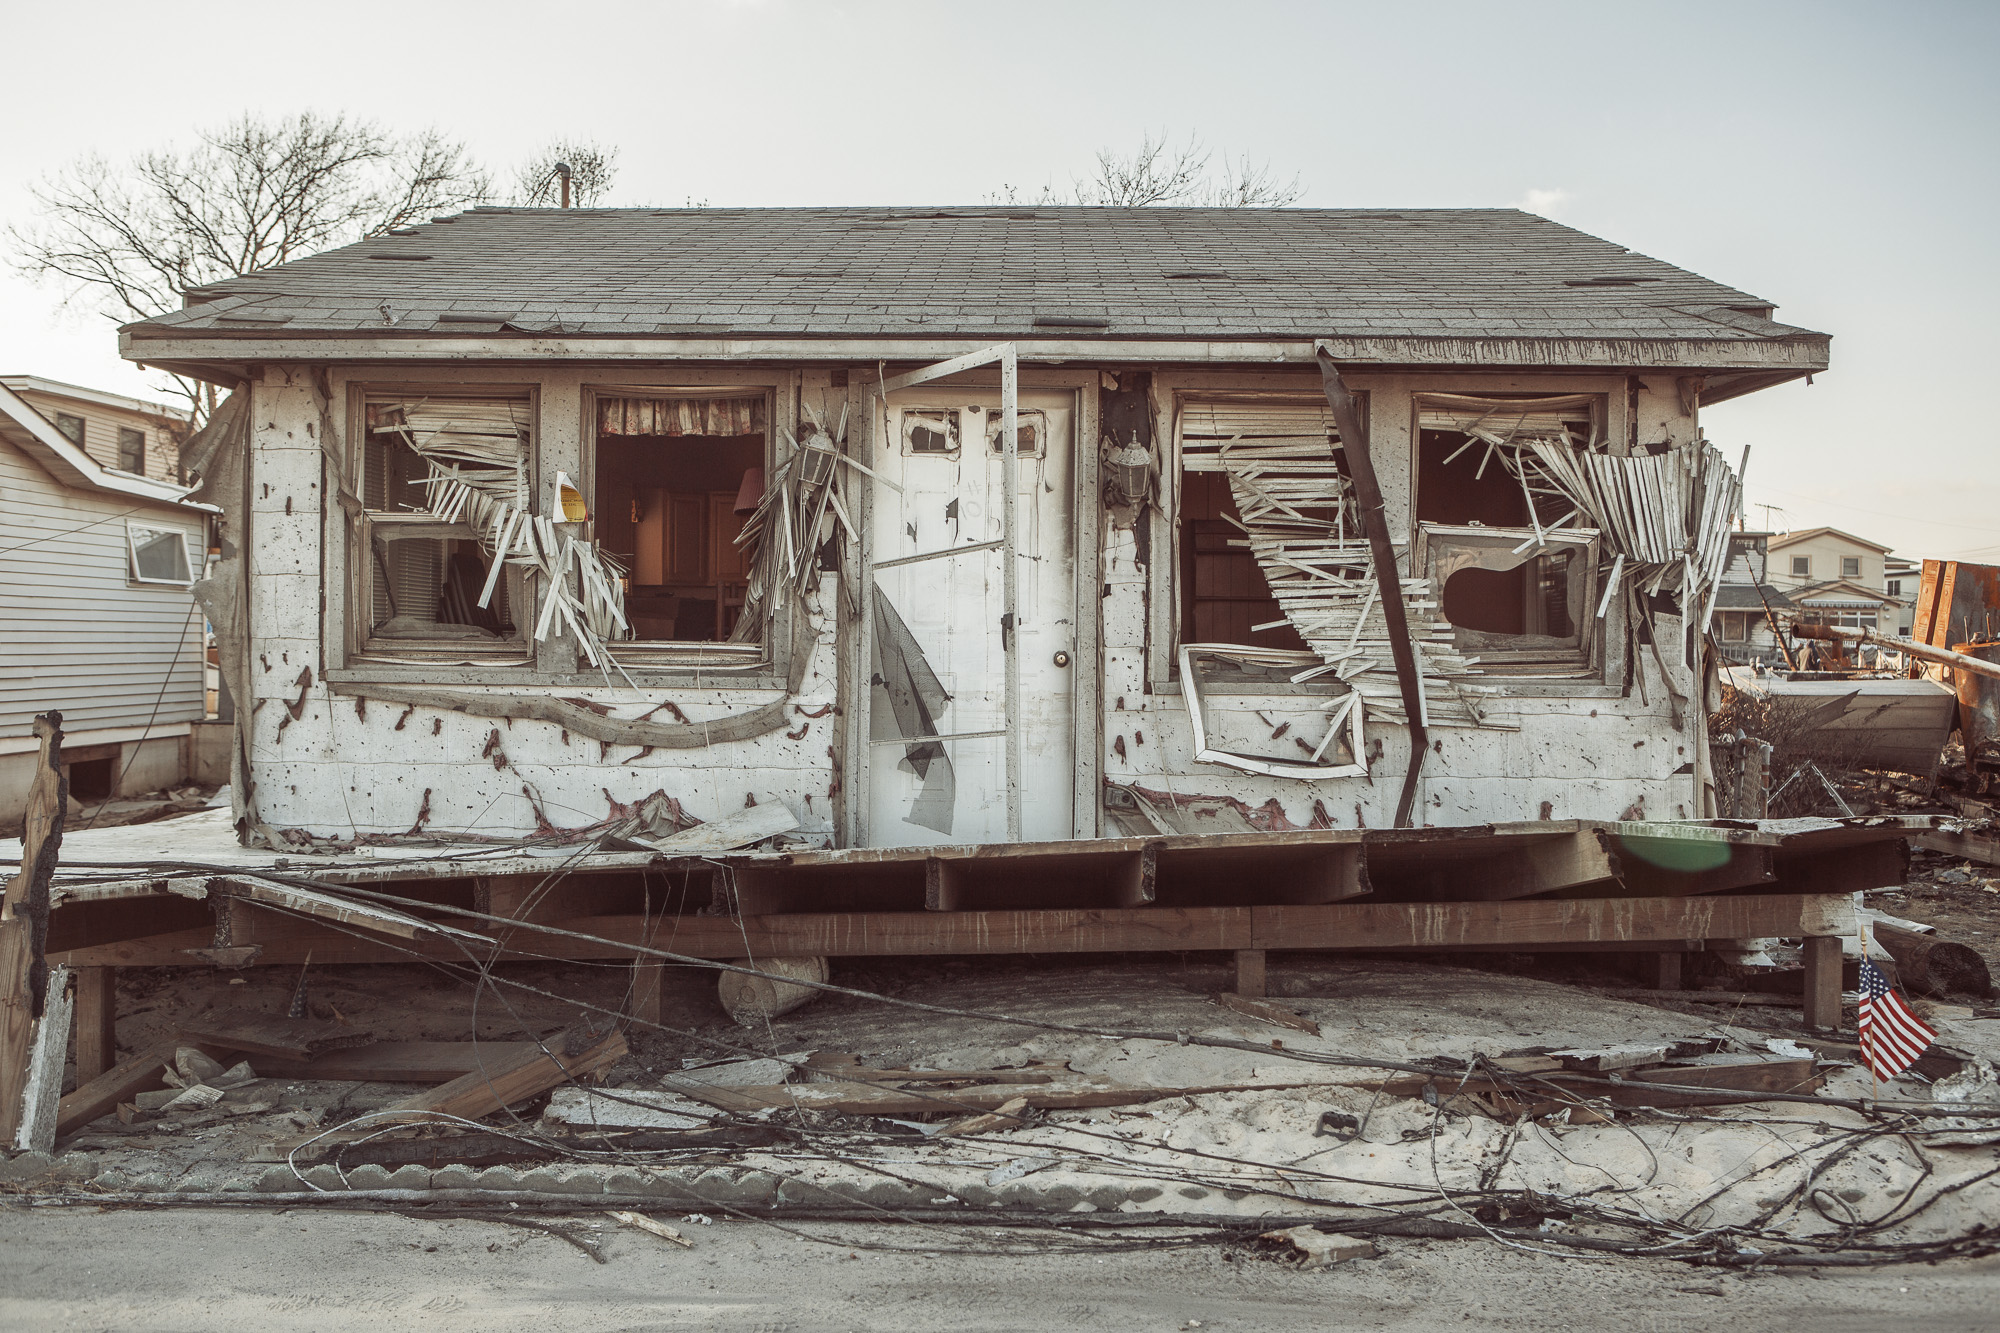 Effects of adults from broken homes